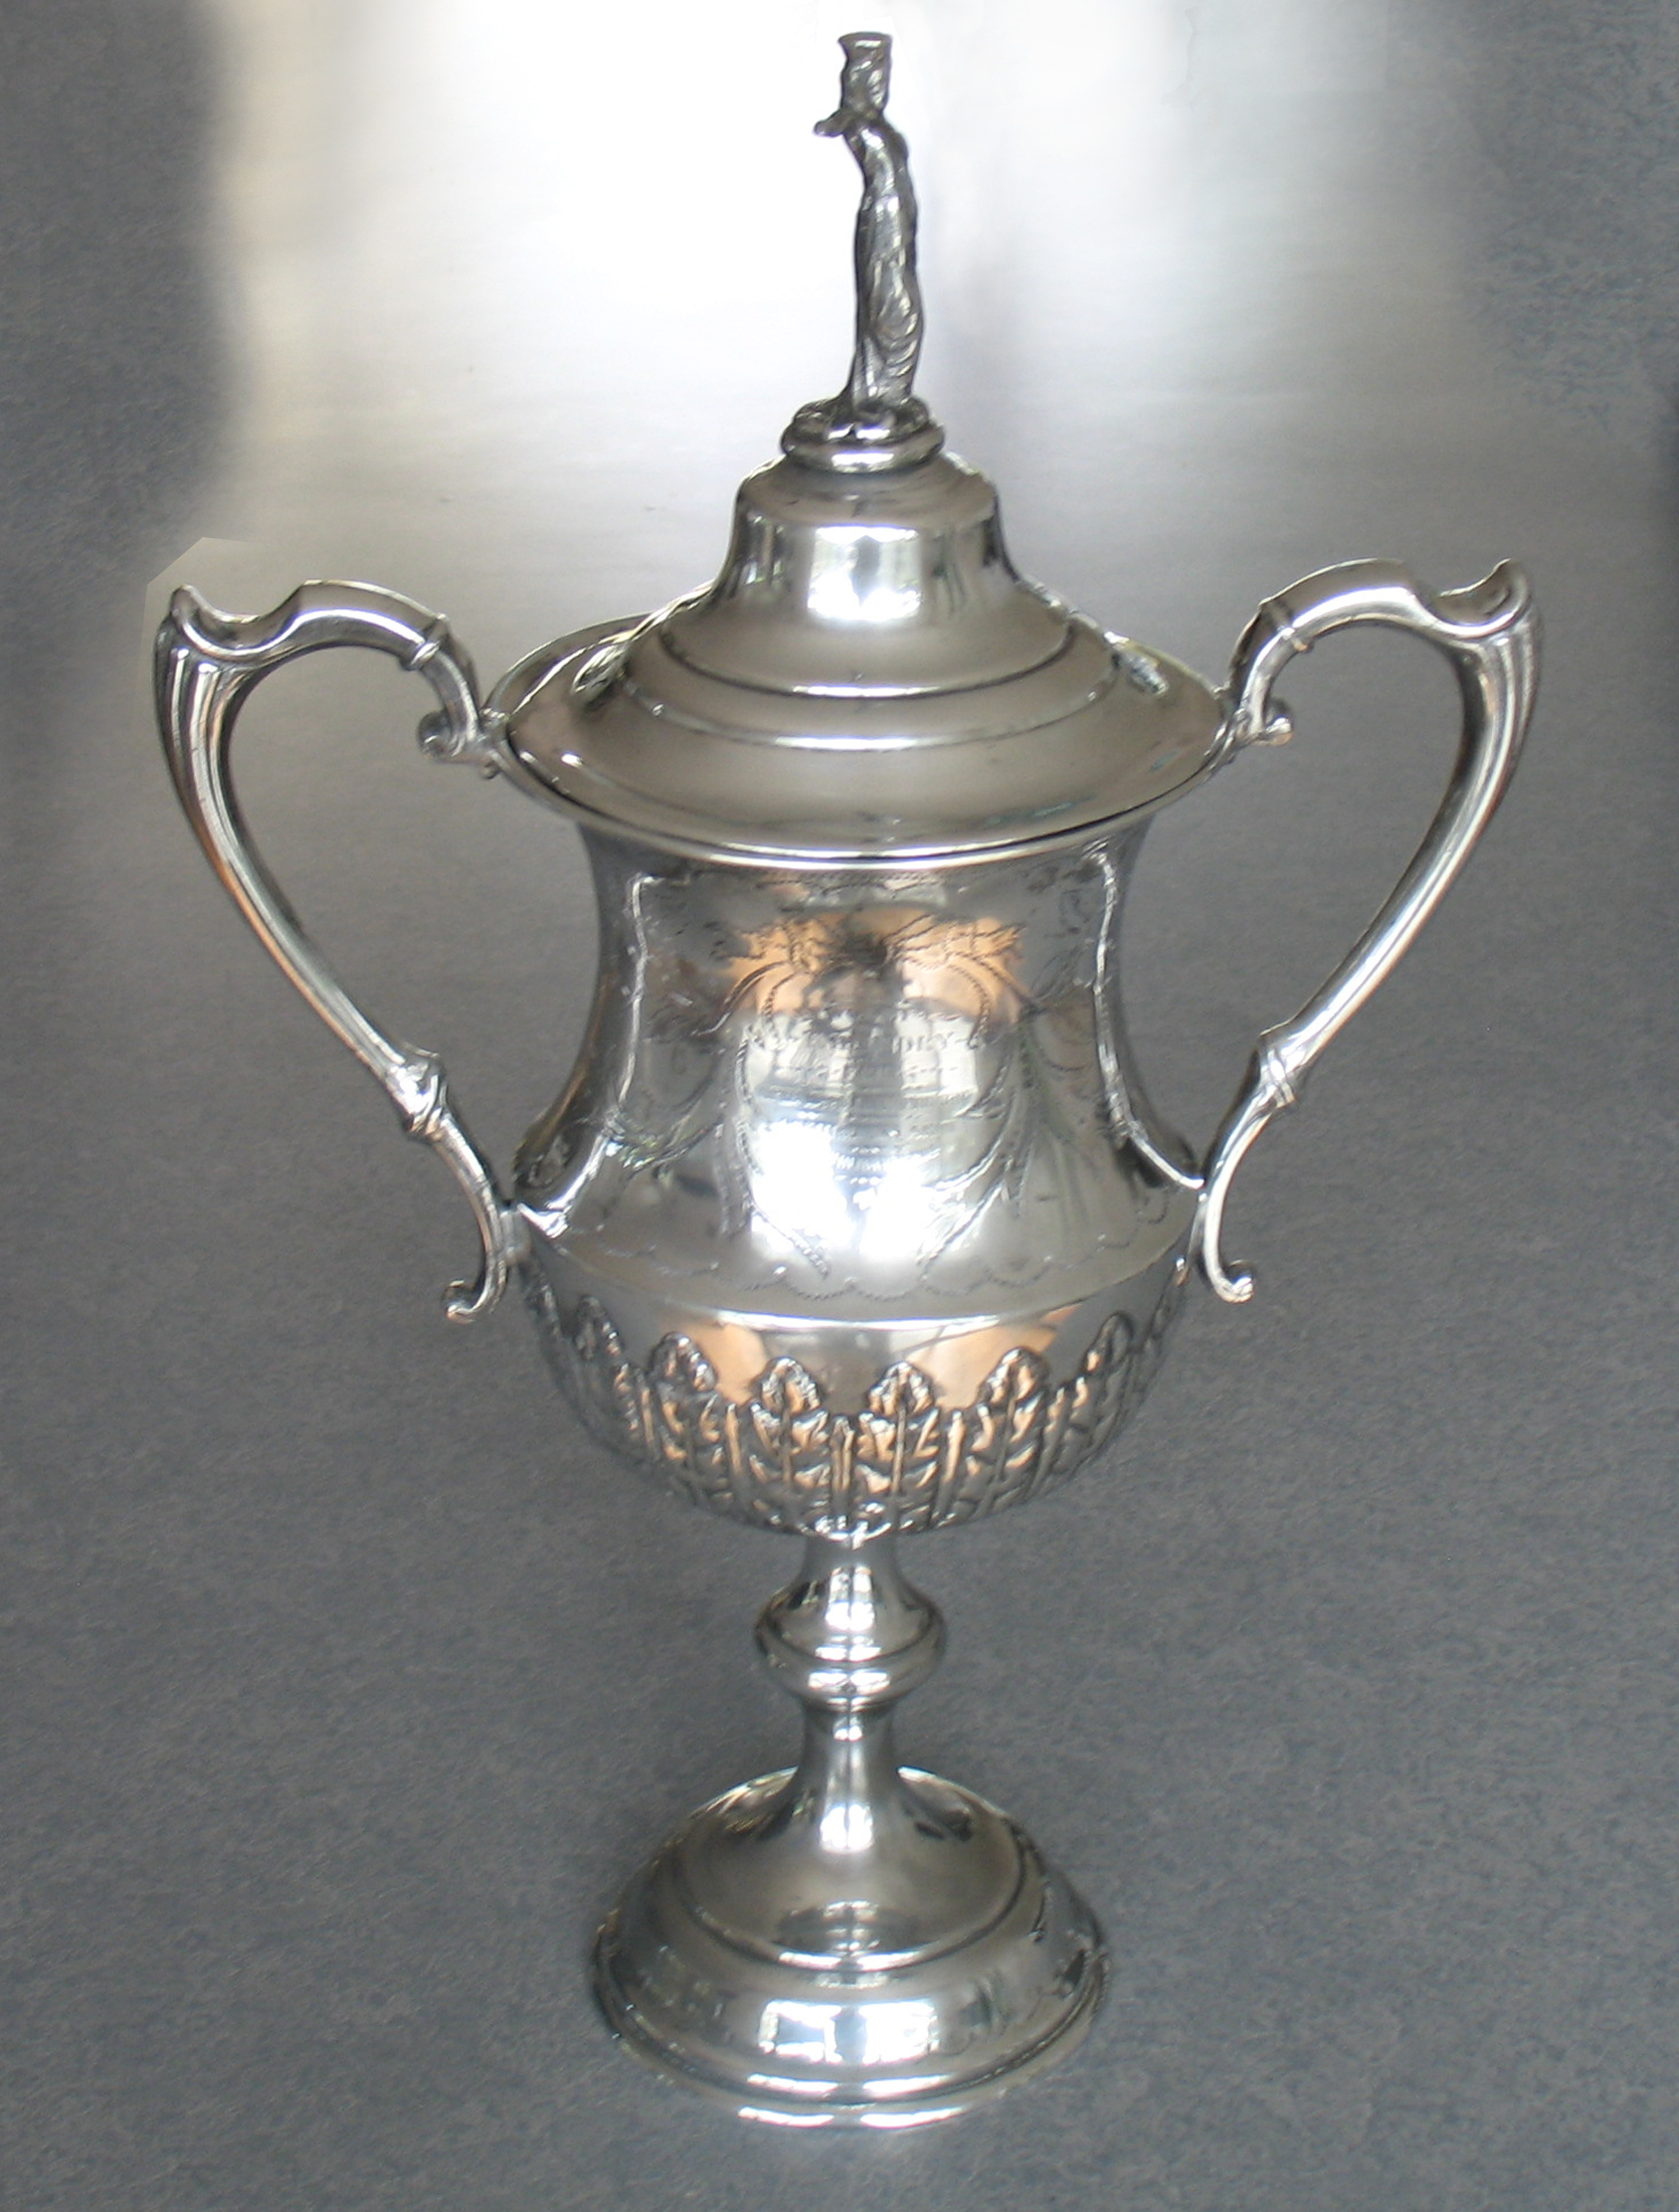 SilverPlate-trophy-repaired-straightened.jpg